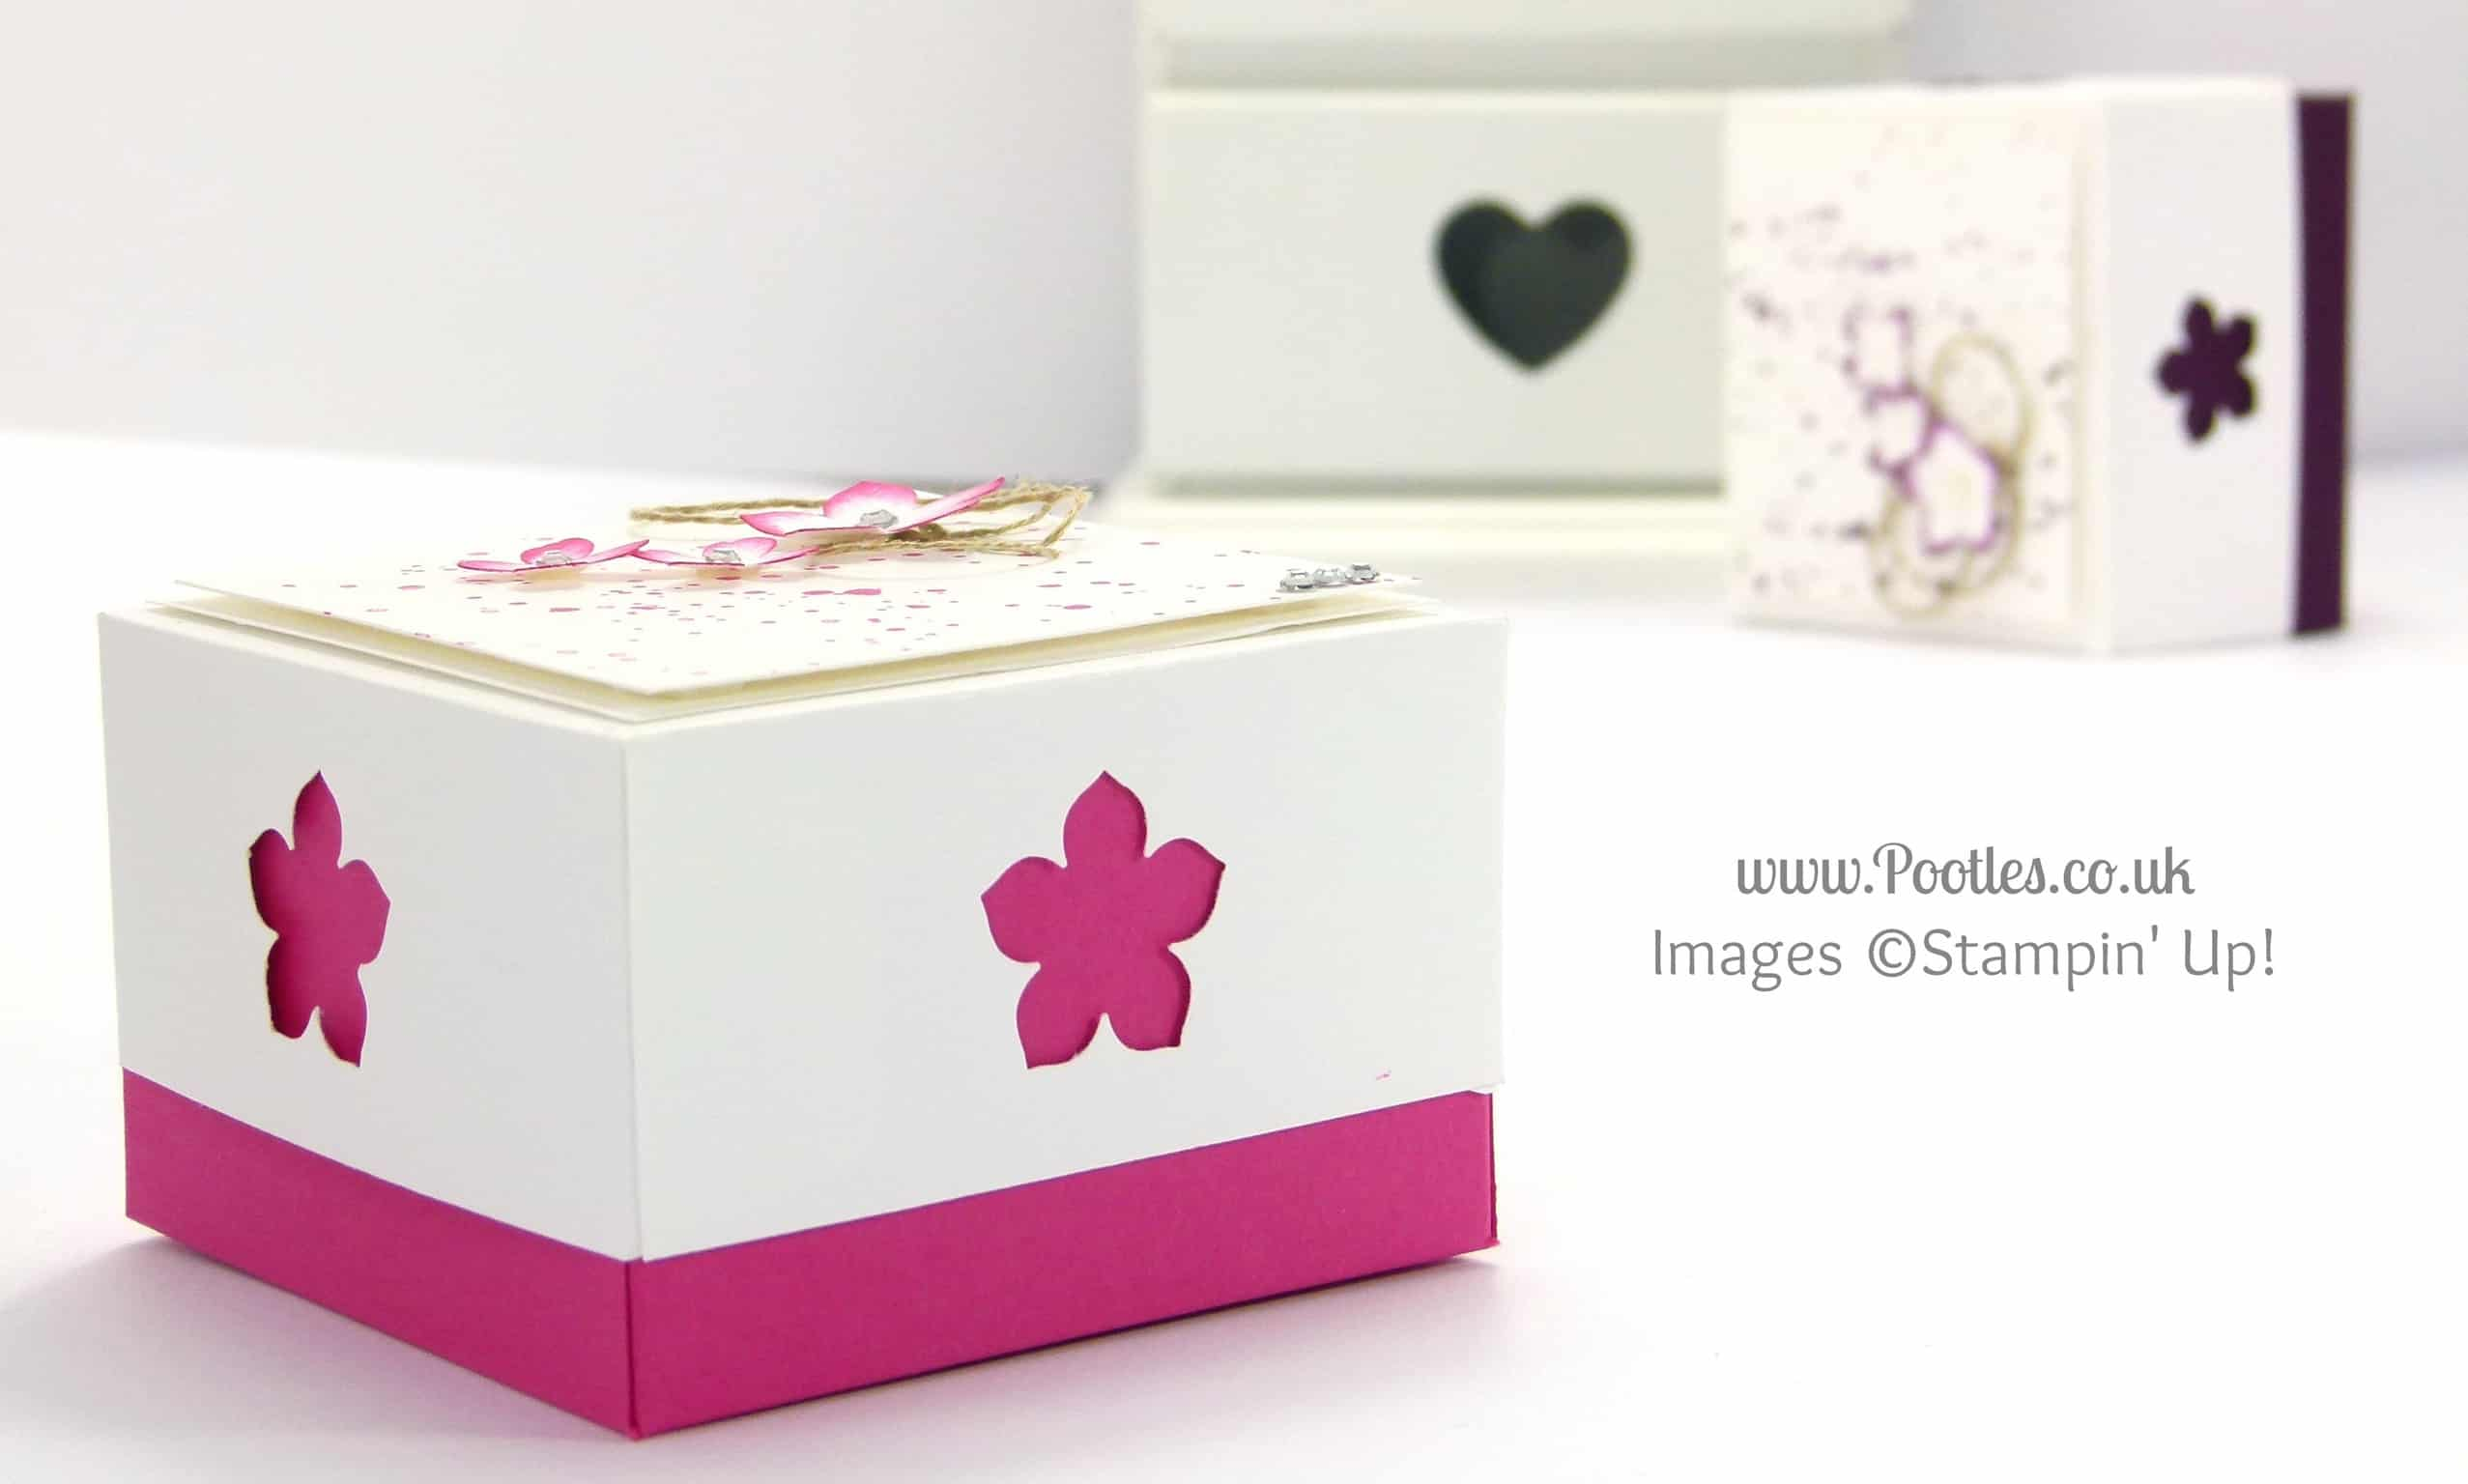 3x3 Car Box for Swaps for US Stampin' Up! Convention 2014 Tutorial